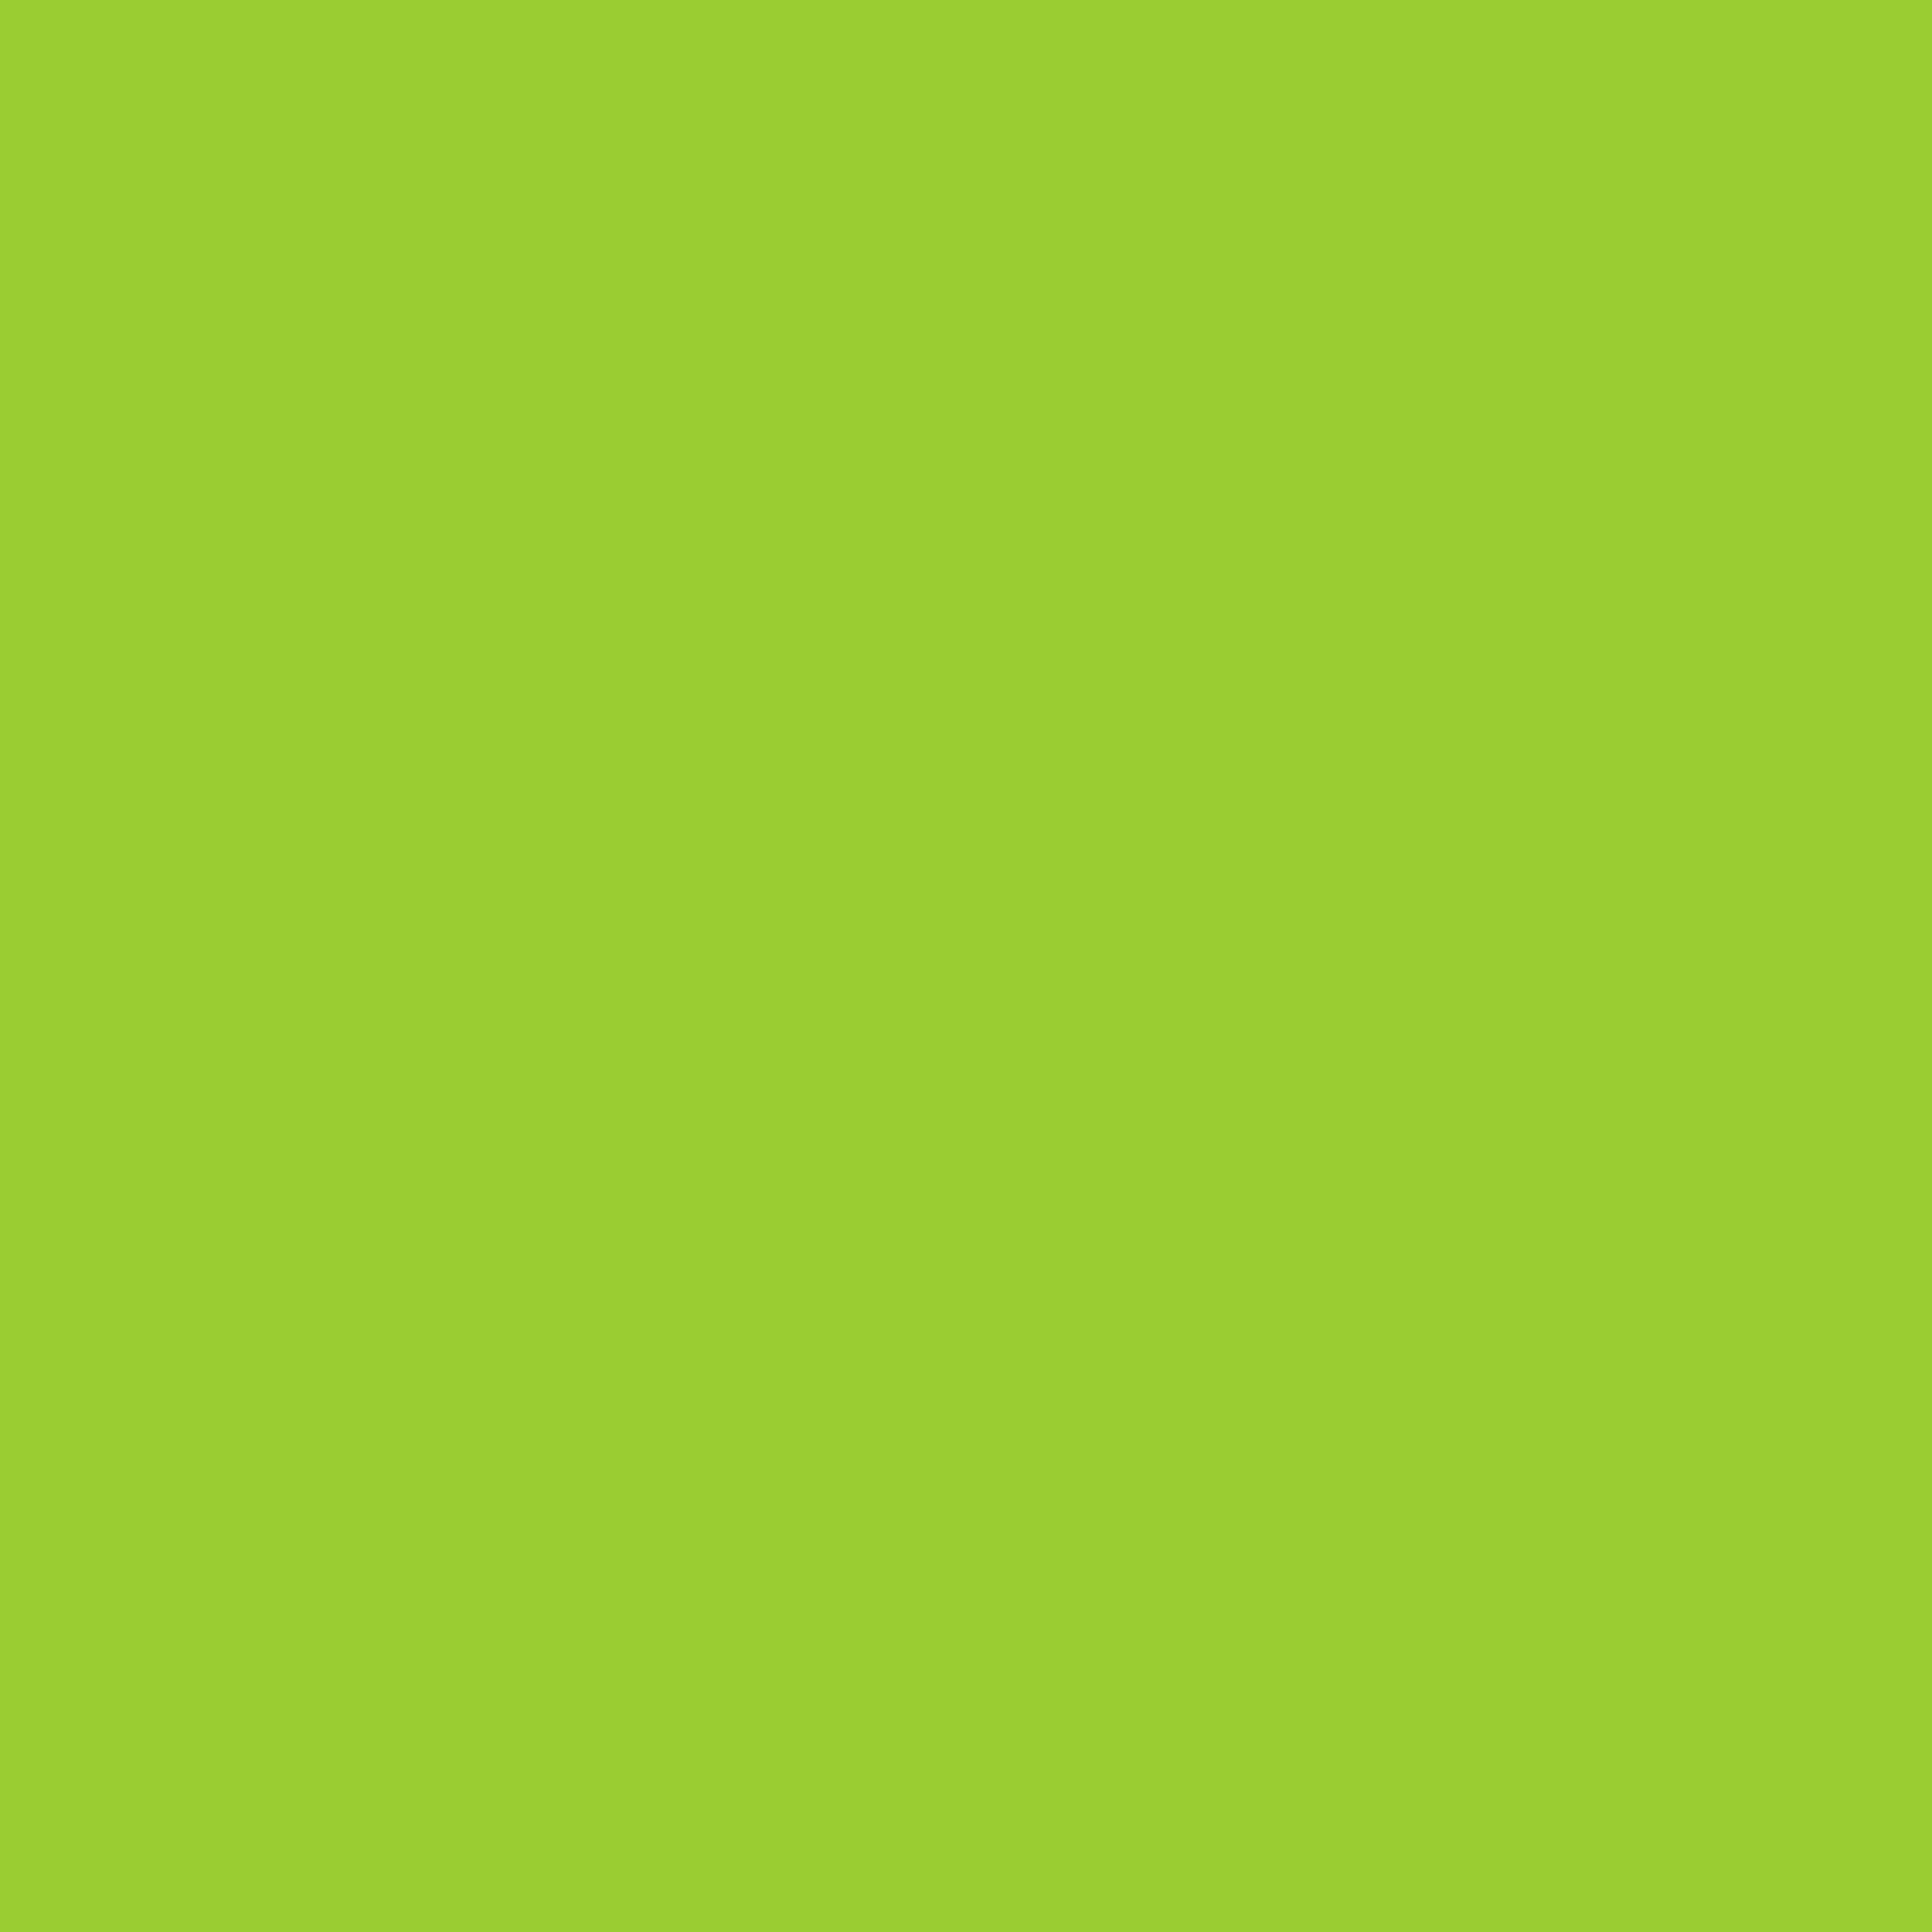 2732x2732 Yellow-green Solid Color Background